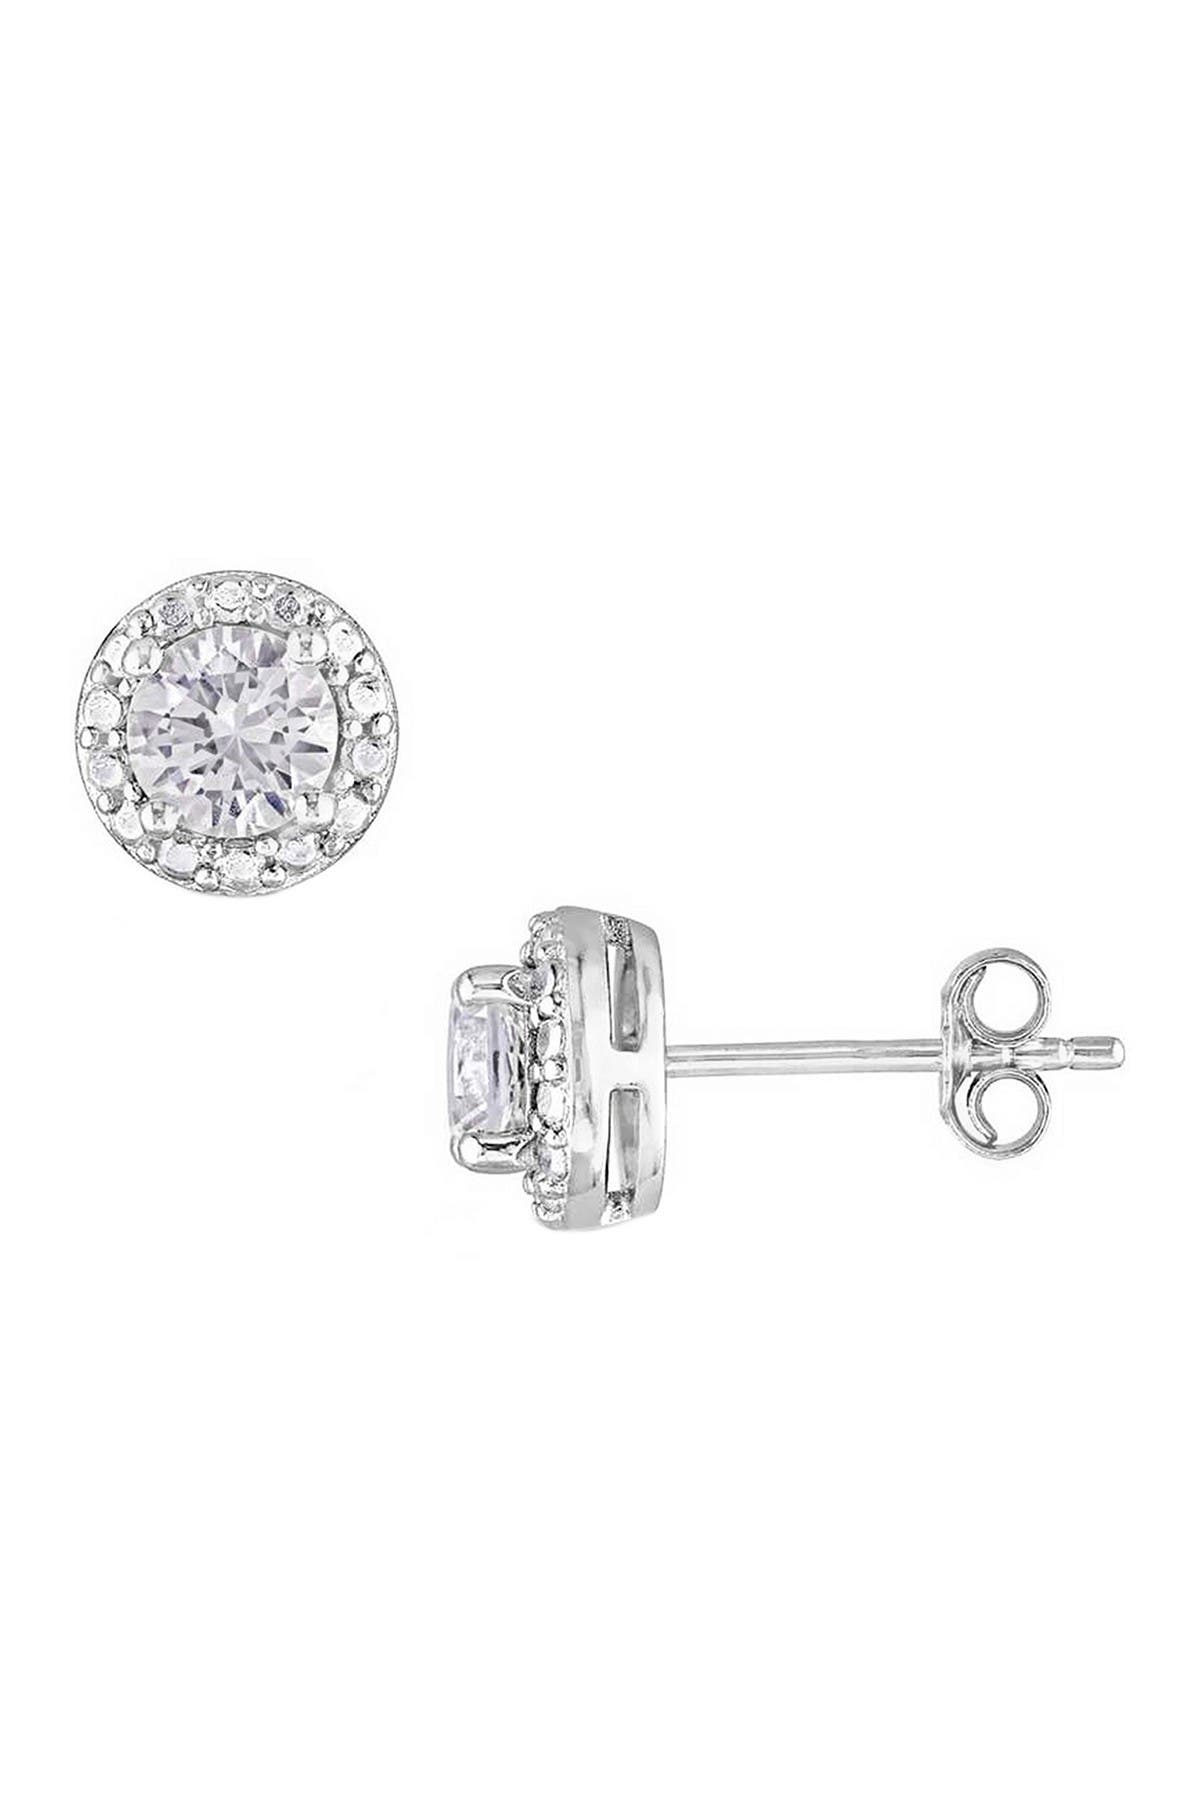 Image of Savvy Cie Sterling Silver Diamond Halo White Sapphire Stud Earrings